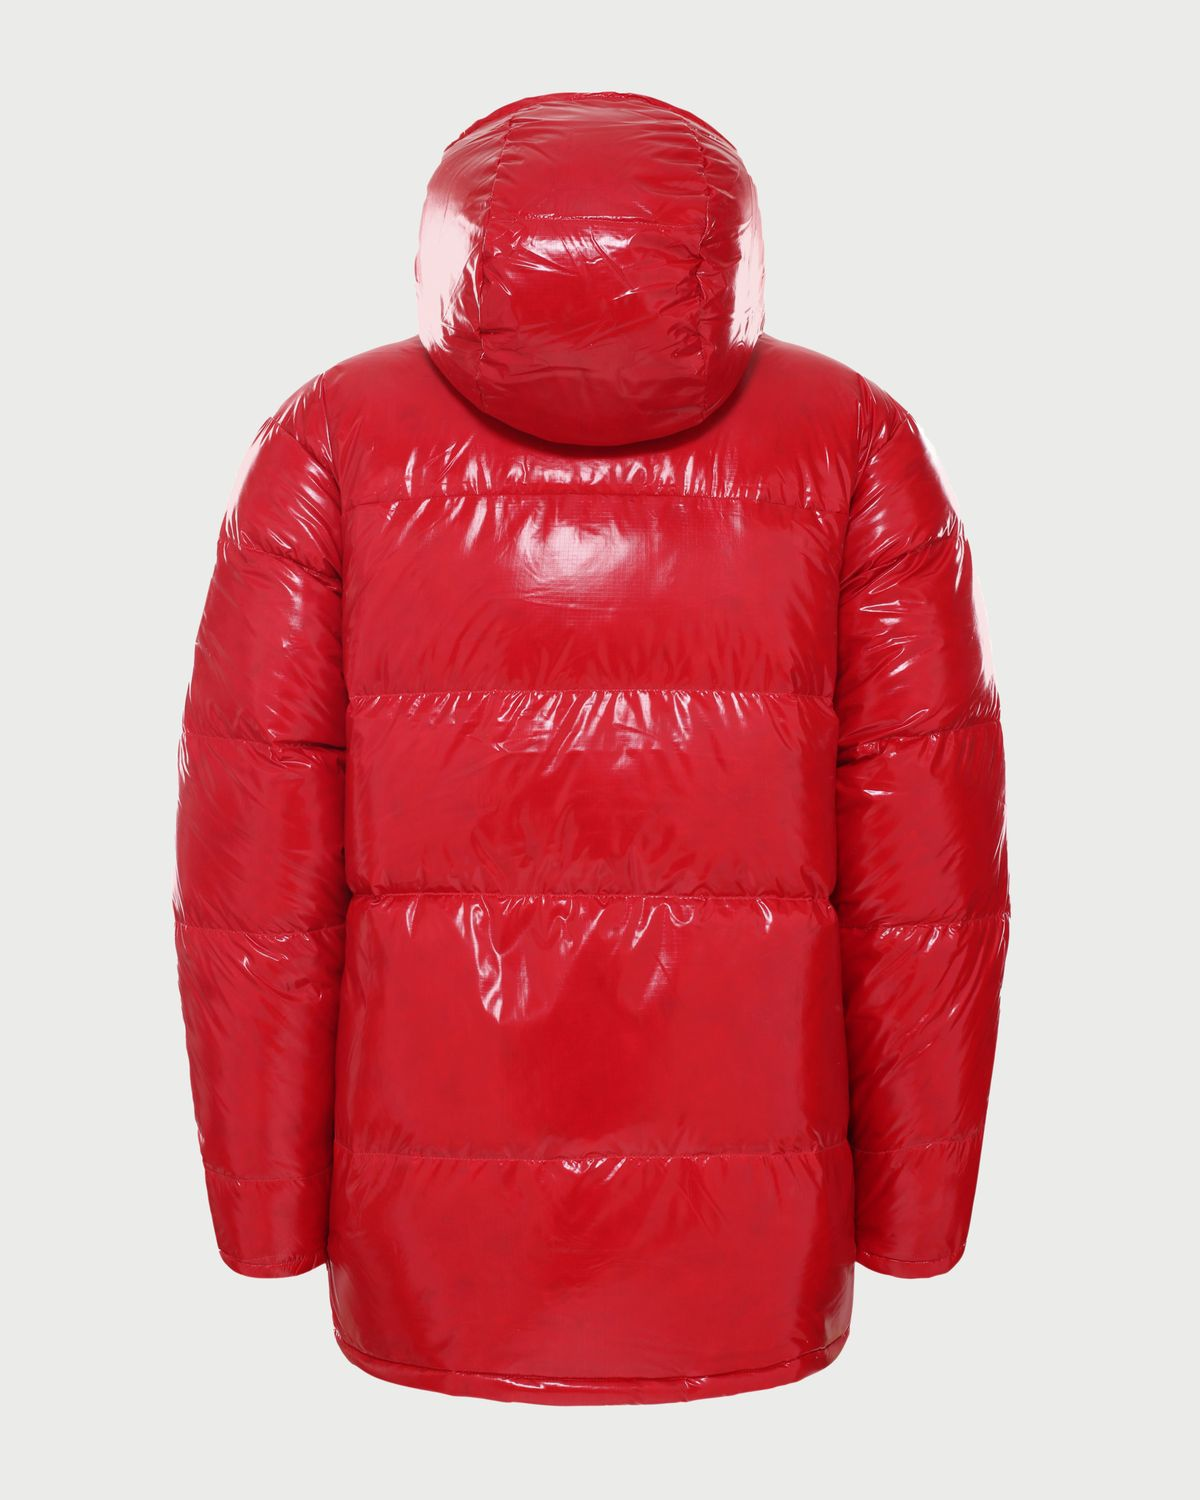 The North Face Brown Label — Brown Label Ripstop Down Parka Red Unisex - Image 2